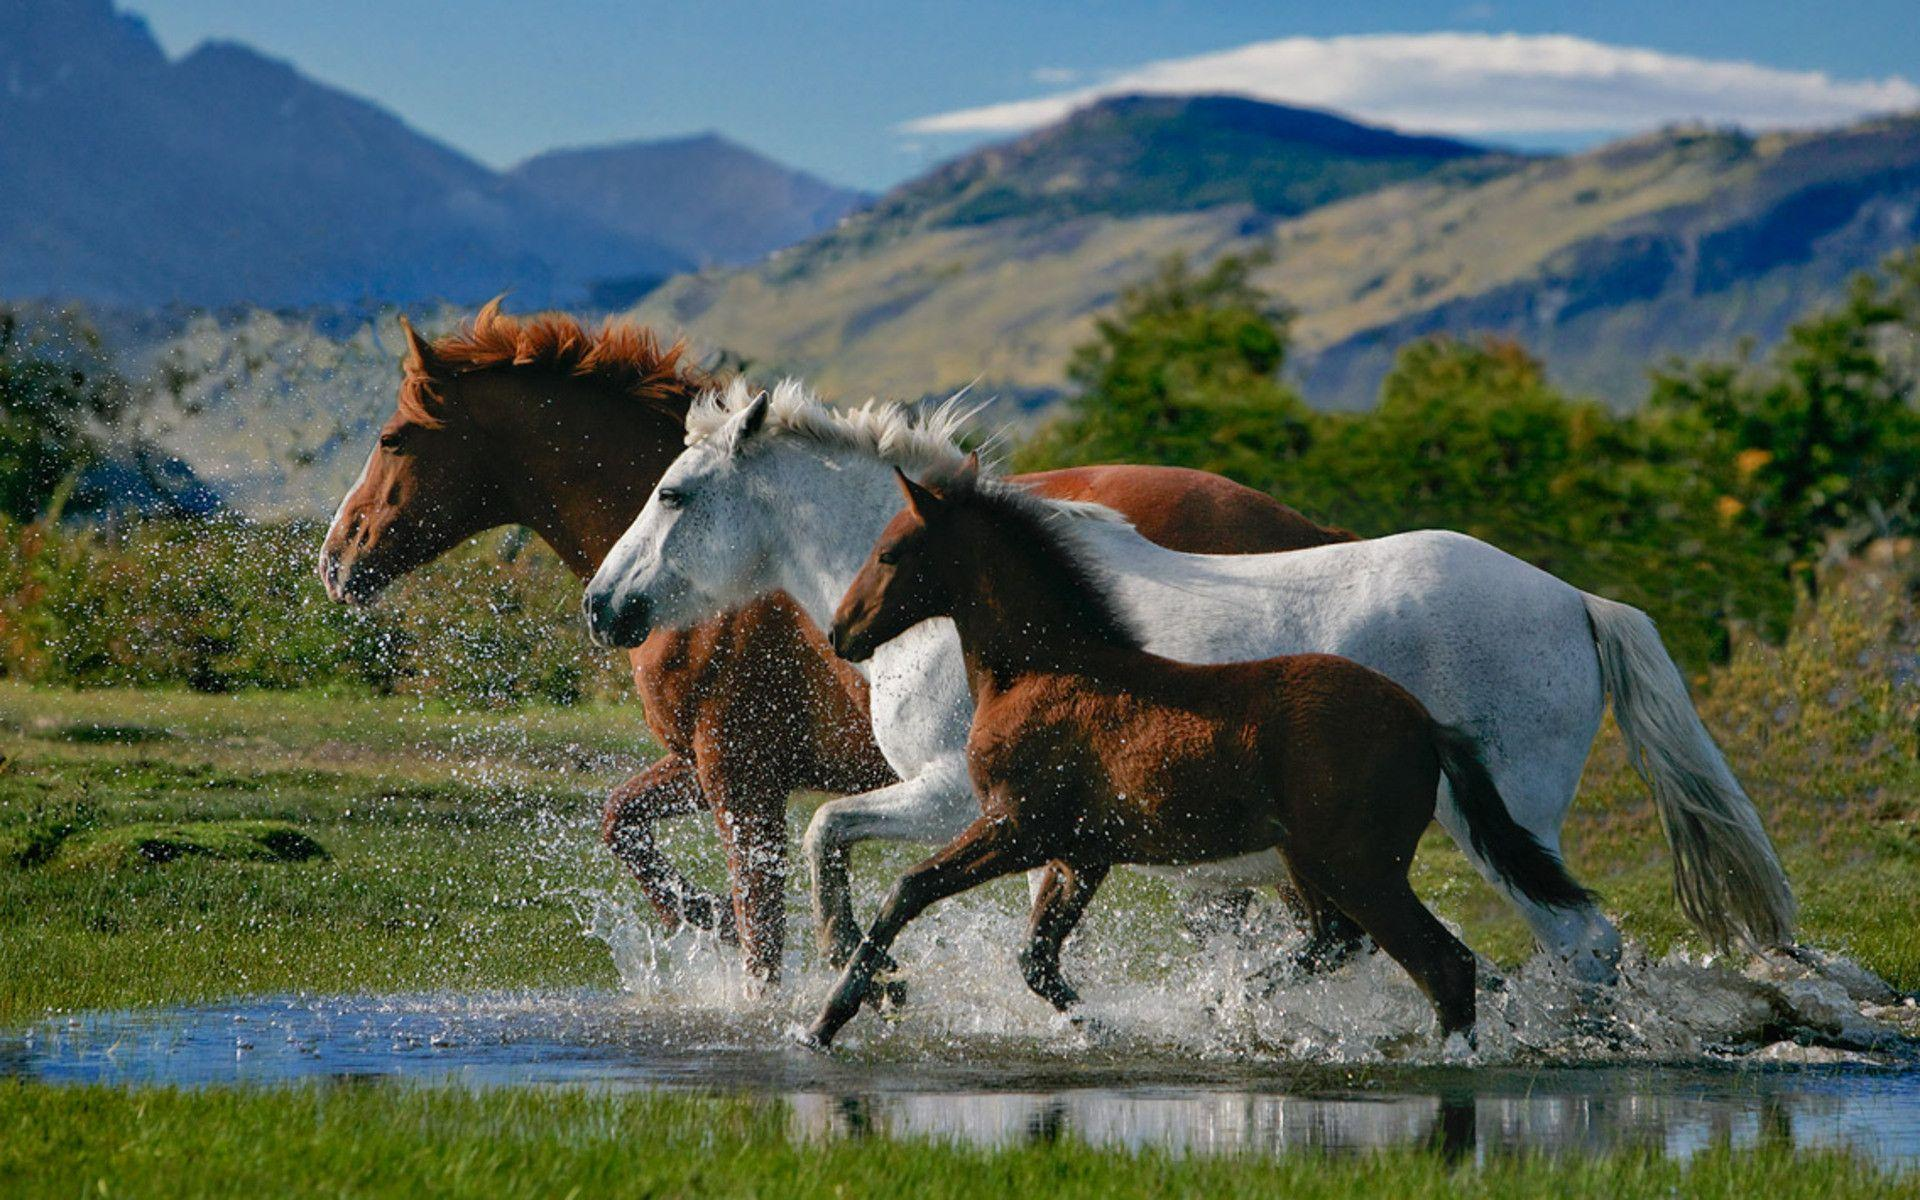 spring wild horse wallpaper - photo #21